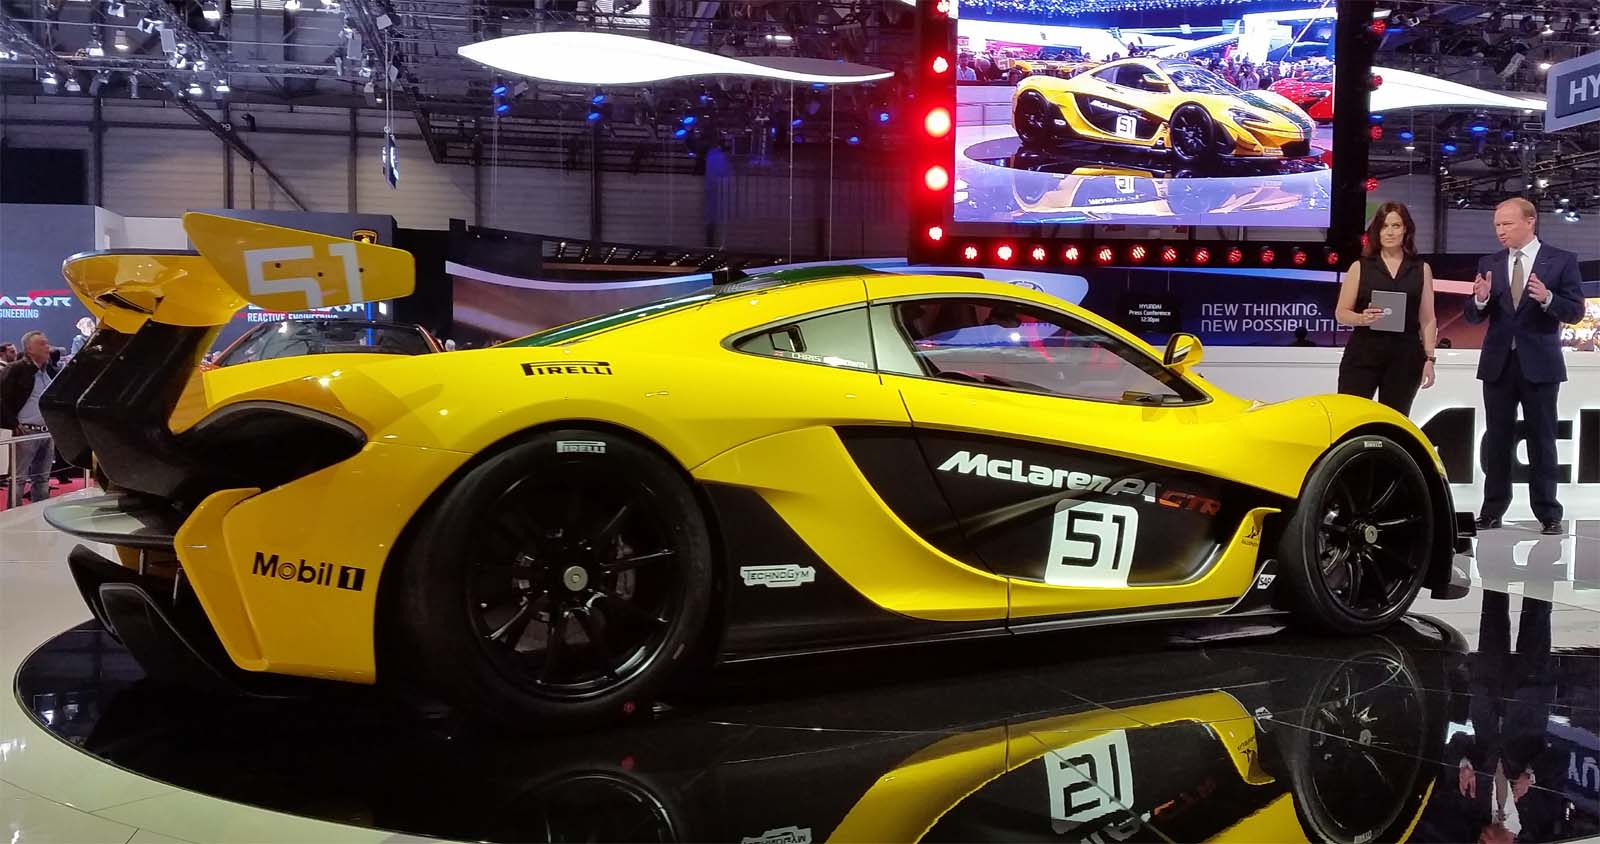 The Launch Of The McLaren P1 GTR And The McLaren 675LT Was An Excellent  Presentation; It Reminded Me Of The Scenery In The Disco Fever Era, But  Without The ...